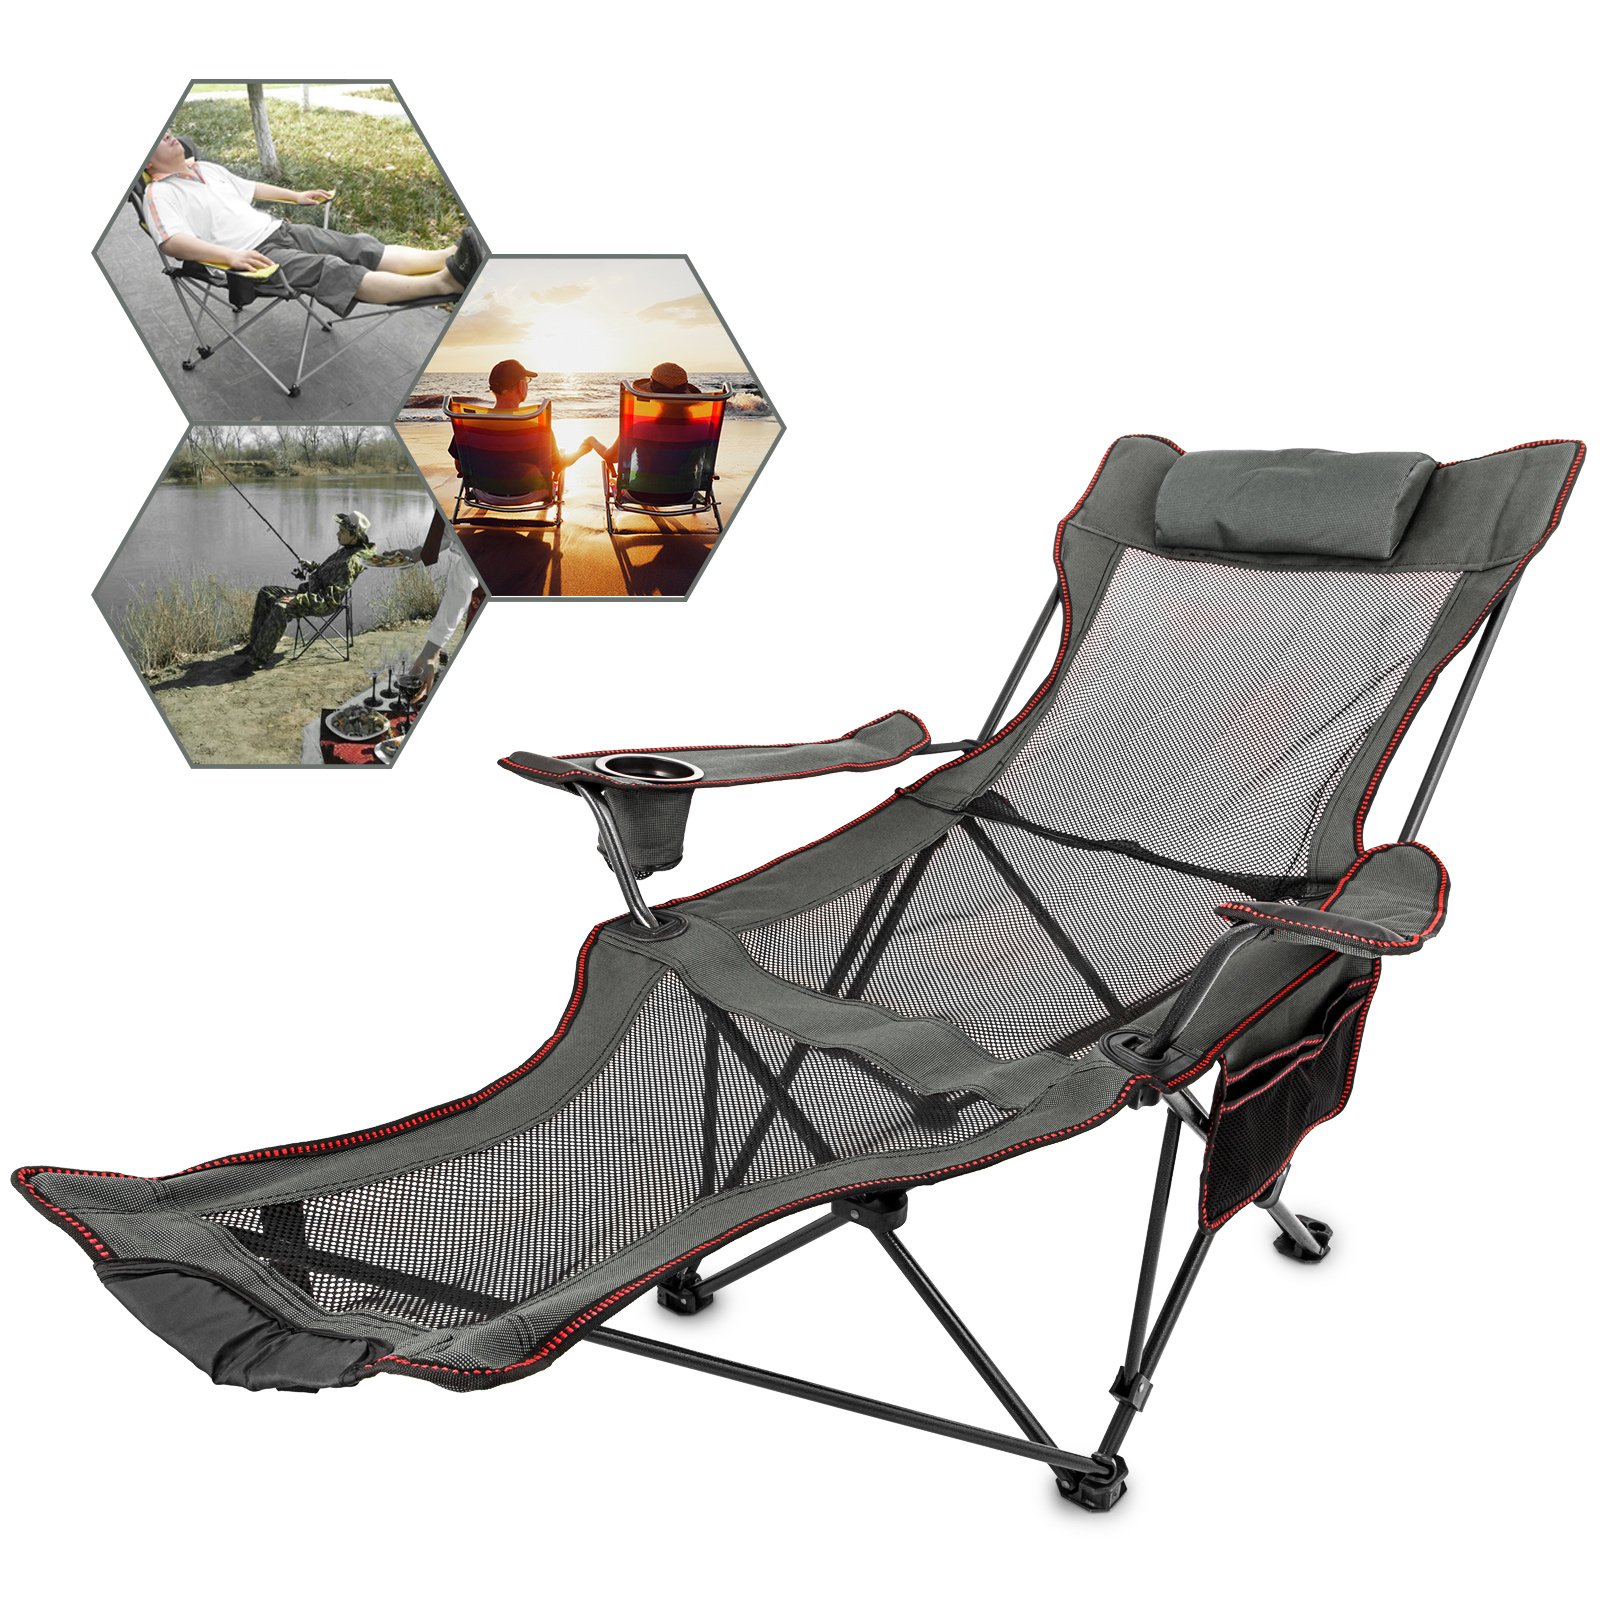 Seat-Stool Fishing-Chair Sun-Lounger Back Folding Portable VEVOR title=